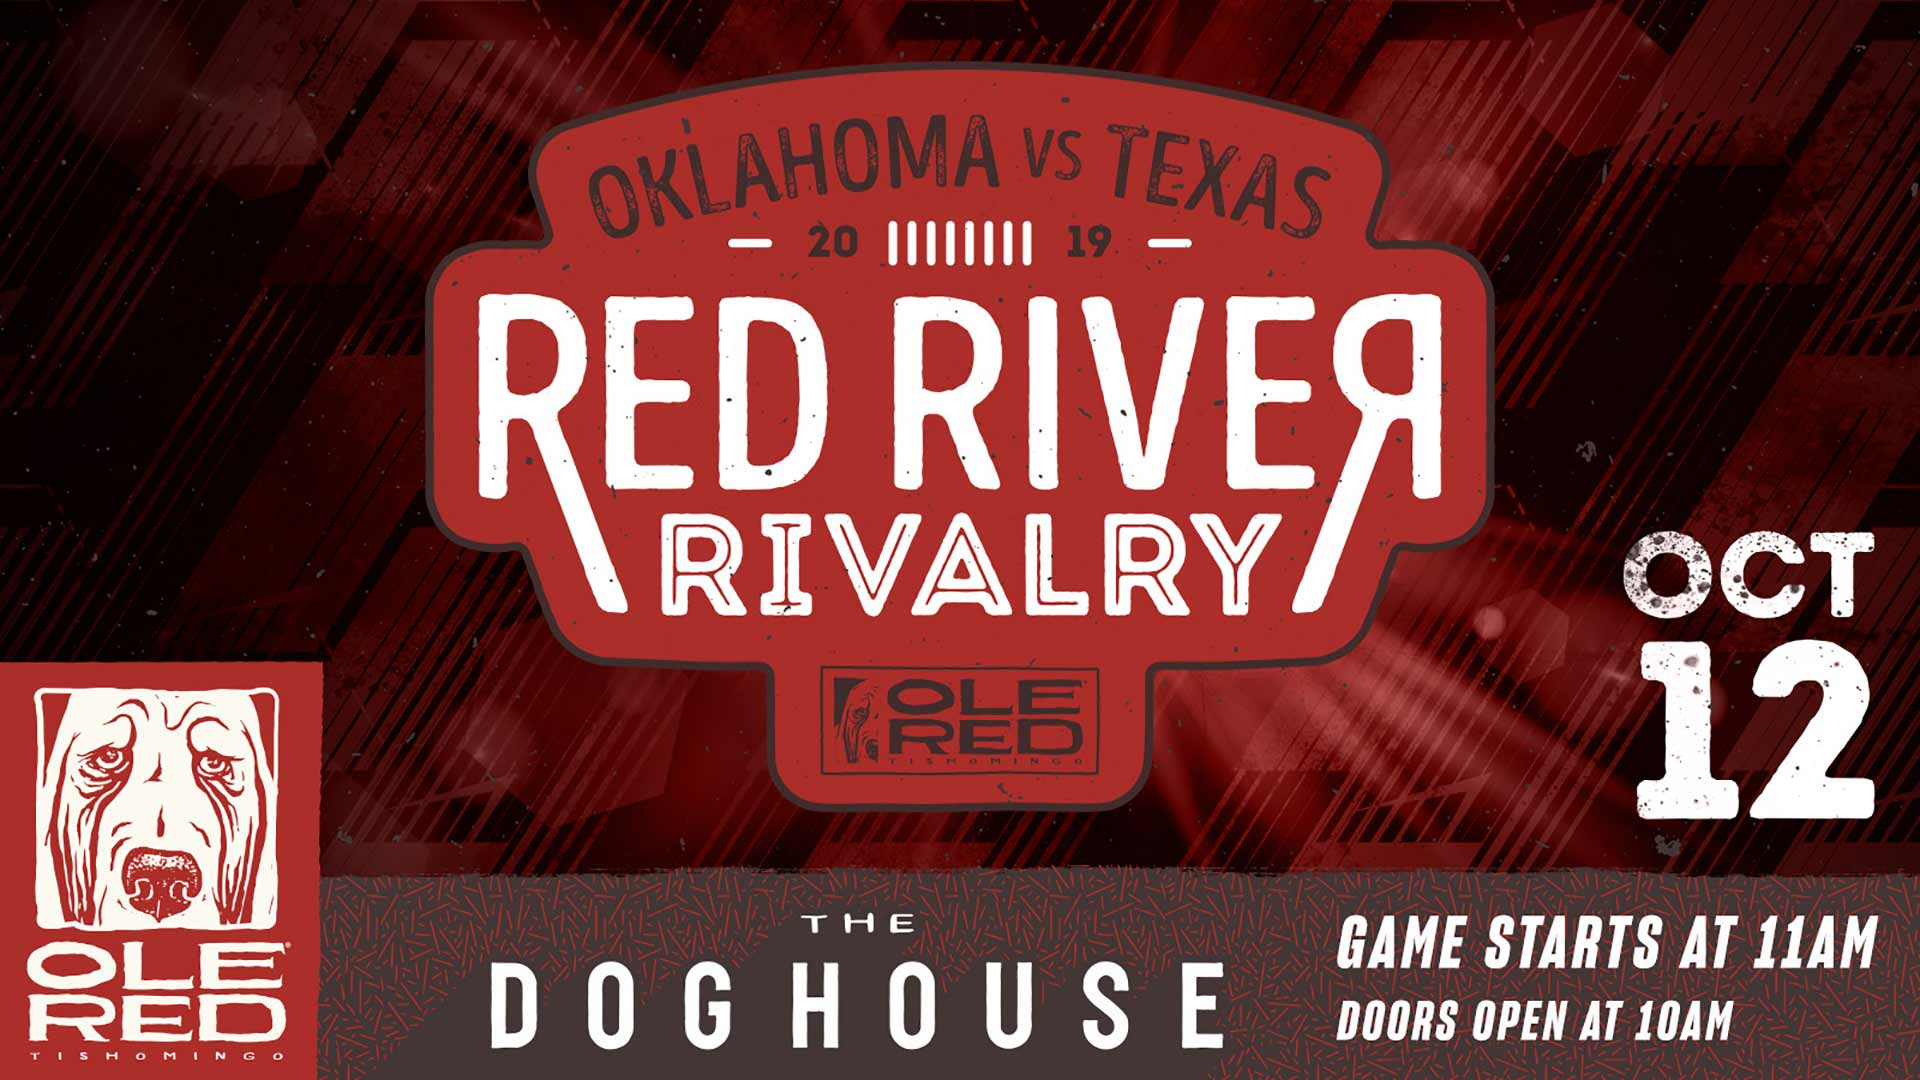 Oklahoma vs Texas 2019 - Red River Rivalry - Oct. 12 - Game Starts at 11 AM